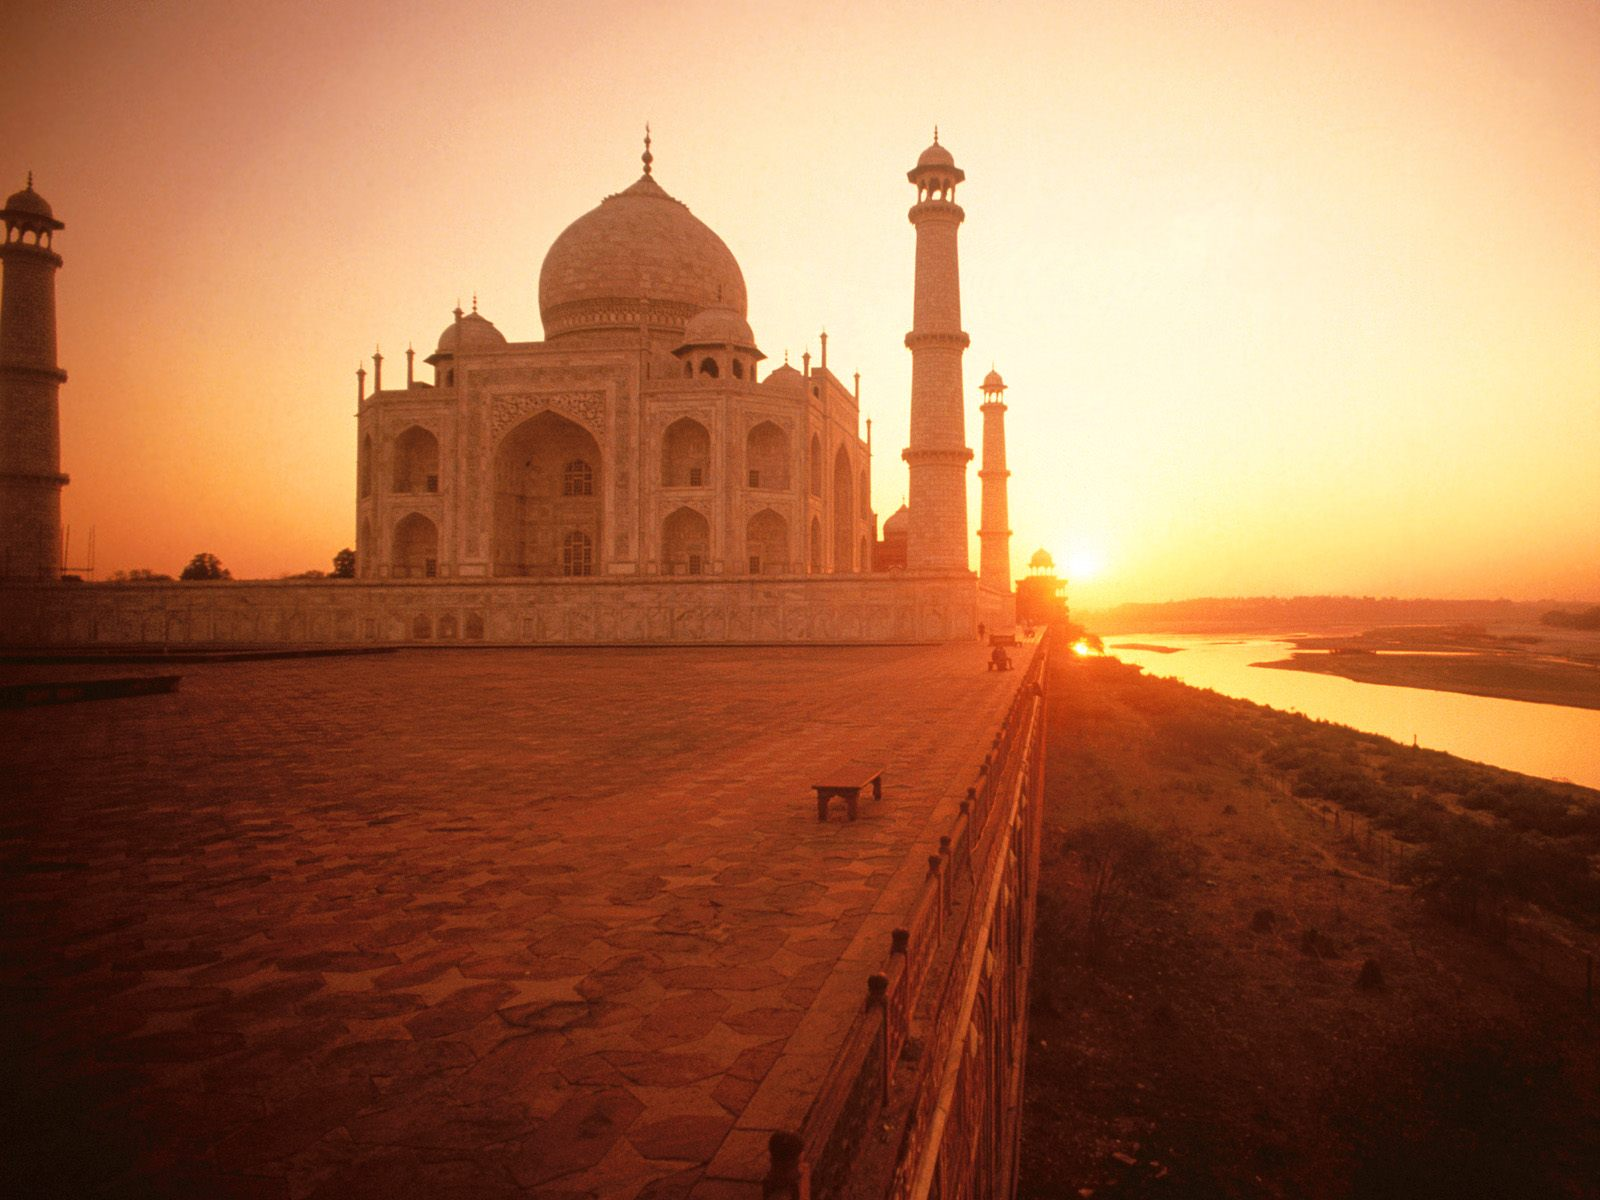 The Taj Mahal at Sunset India 375.76 Kb